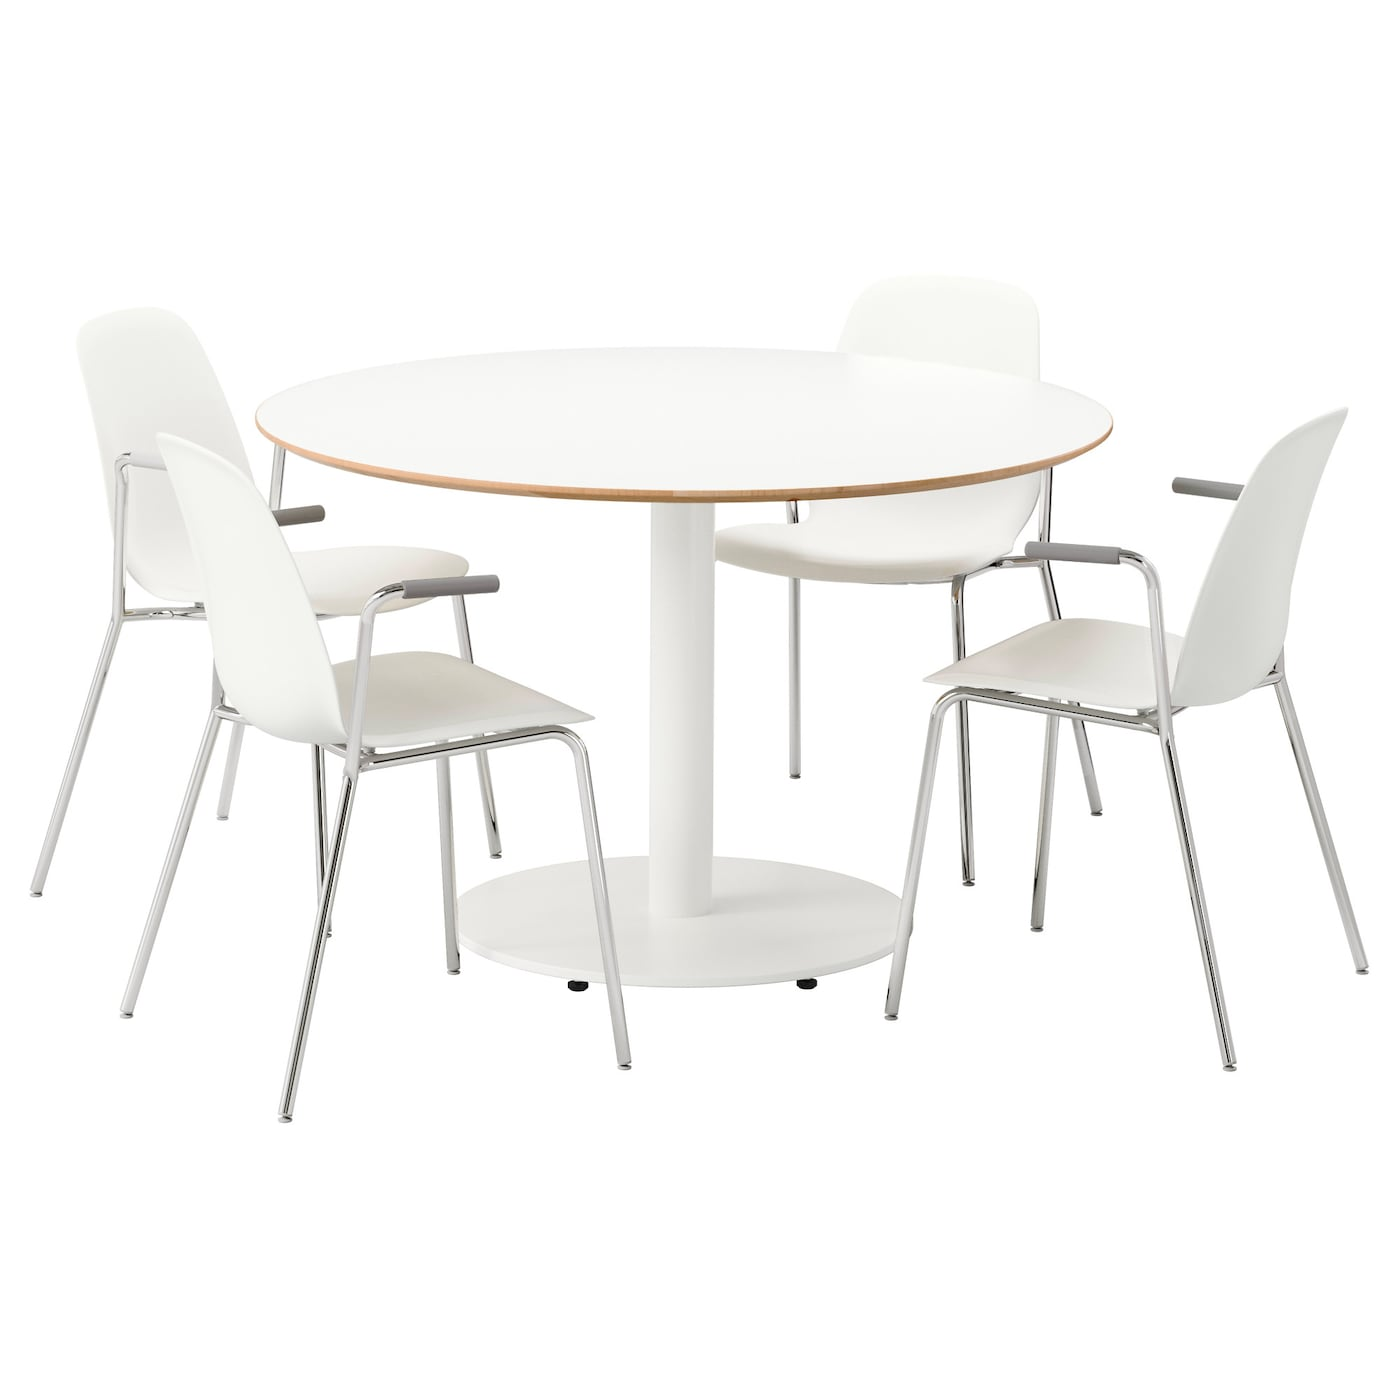 billsta leifarne table and 4 chairs white white 118 cm ikea. Black Bedroom Furniture Sets. Home Design Ideas